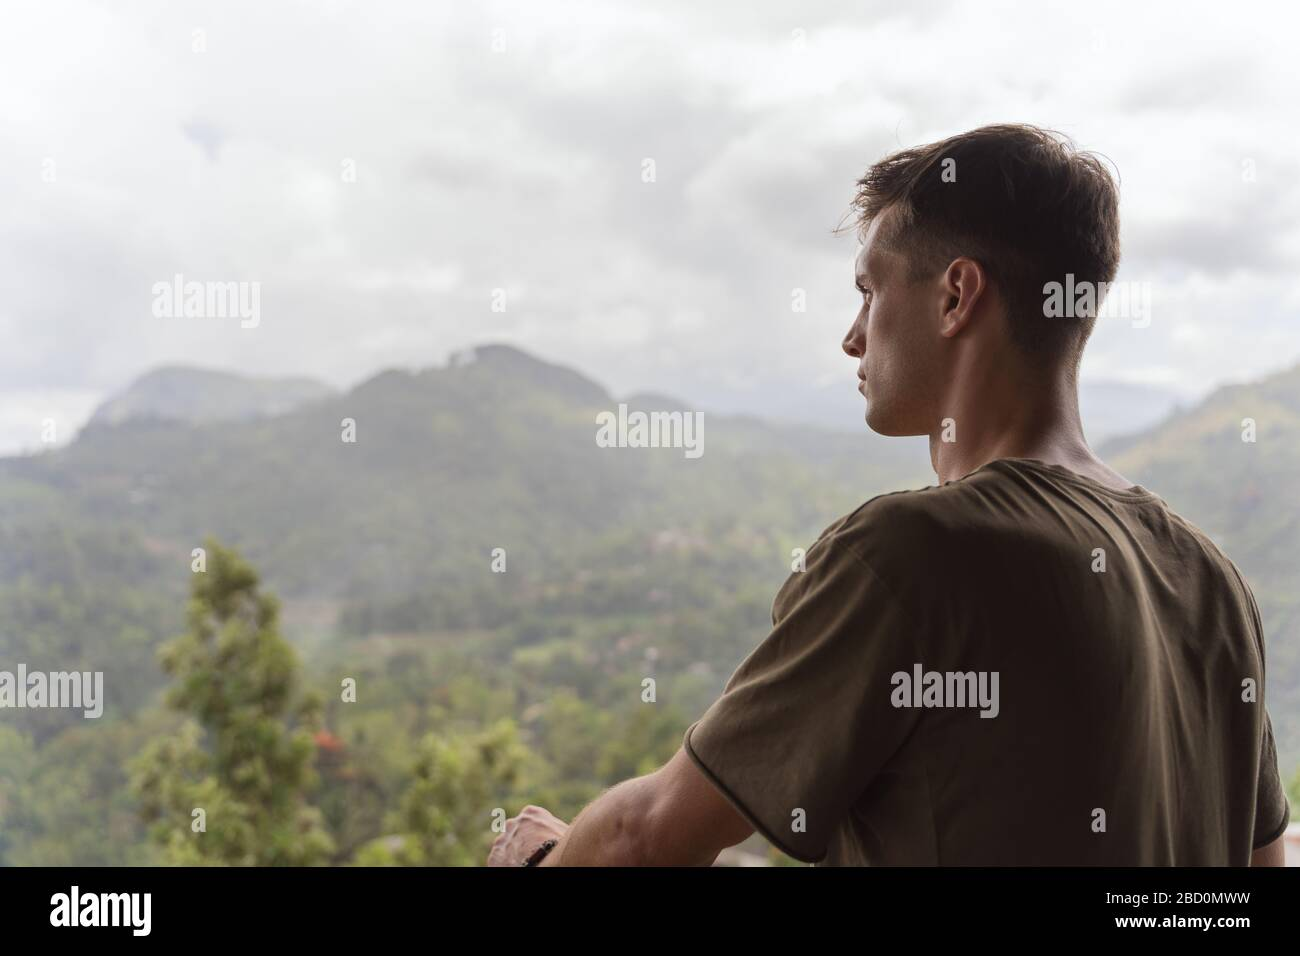 young adult admiring the beautiful nature in a tropical location. Wanderlust Stock Photo